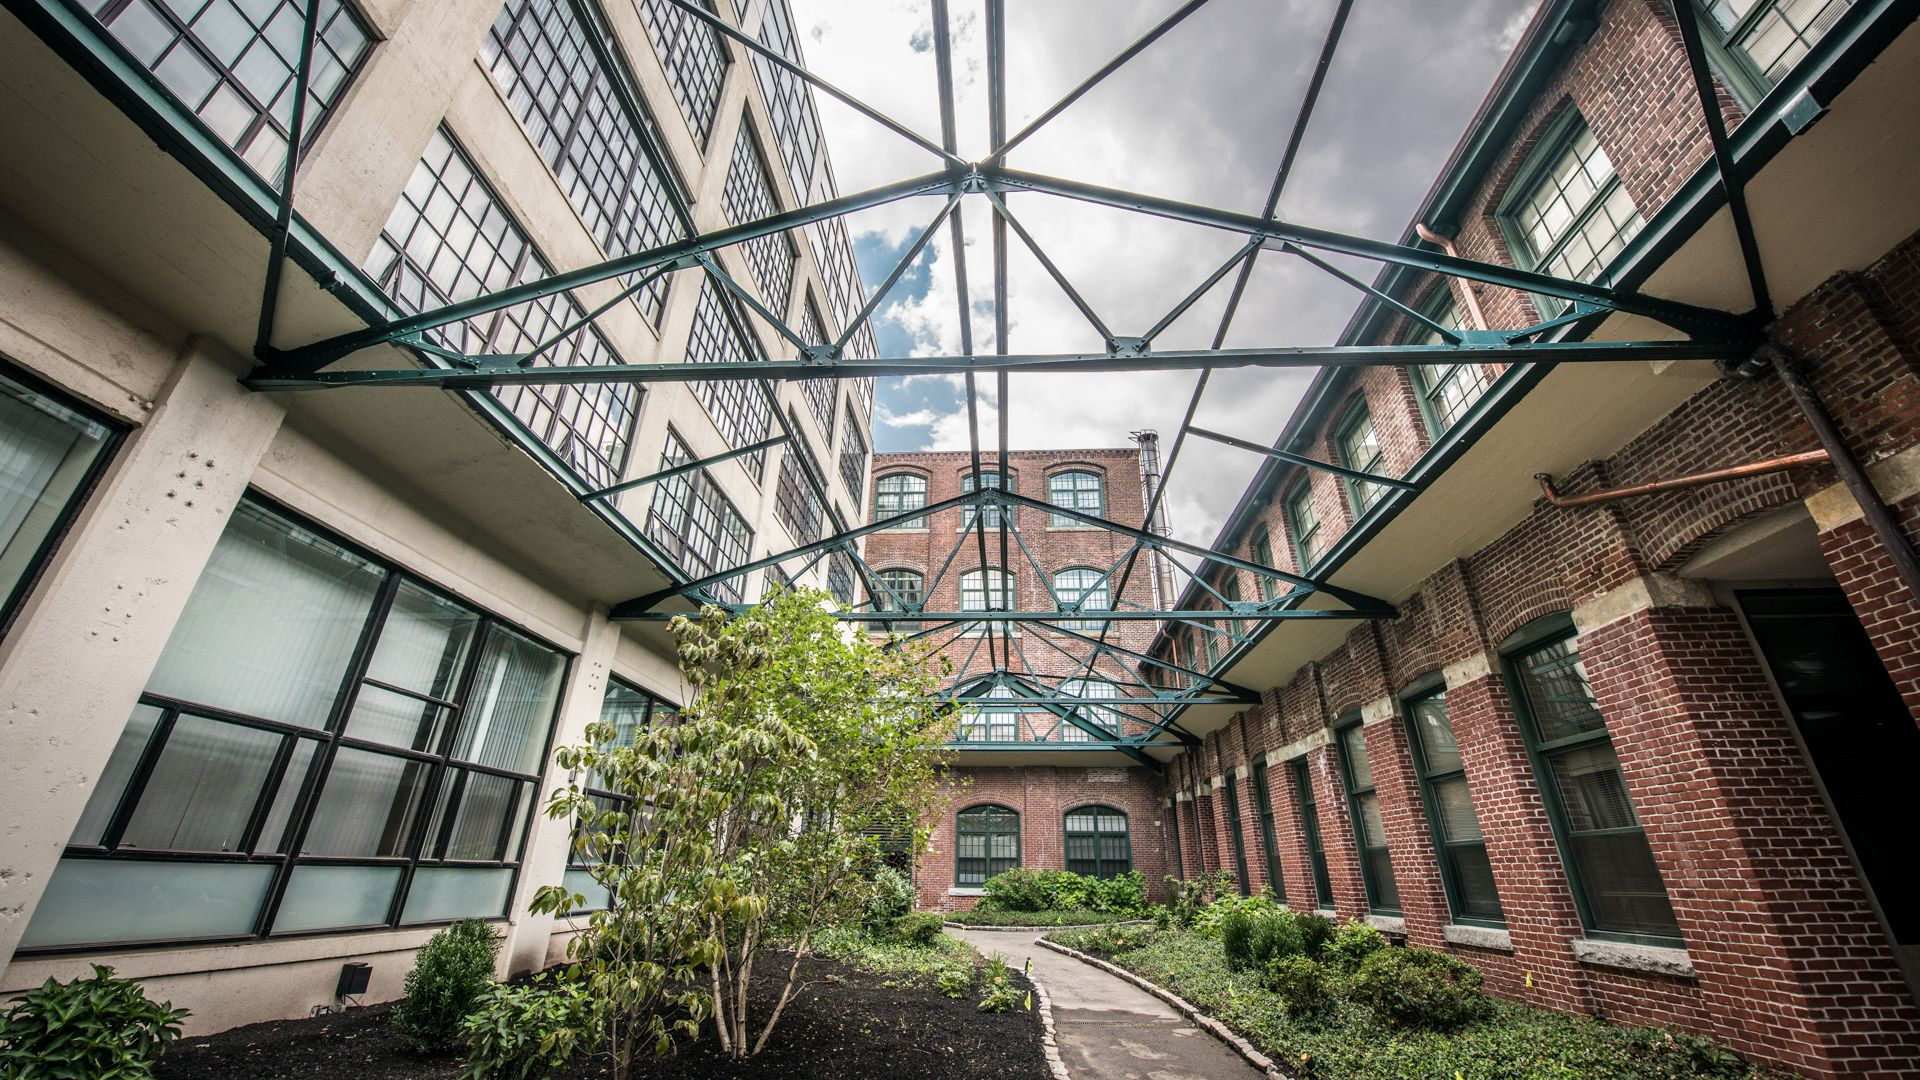 Lofts at Kendall Square Apartments - Garden Courtyard